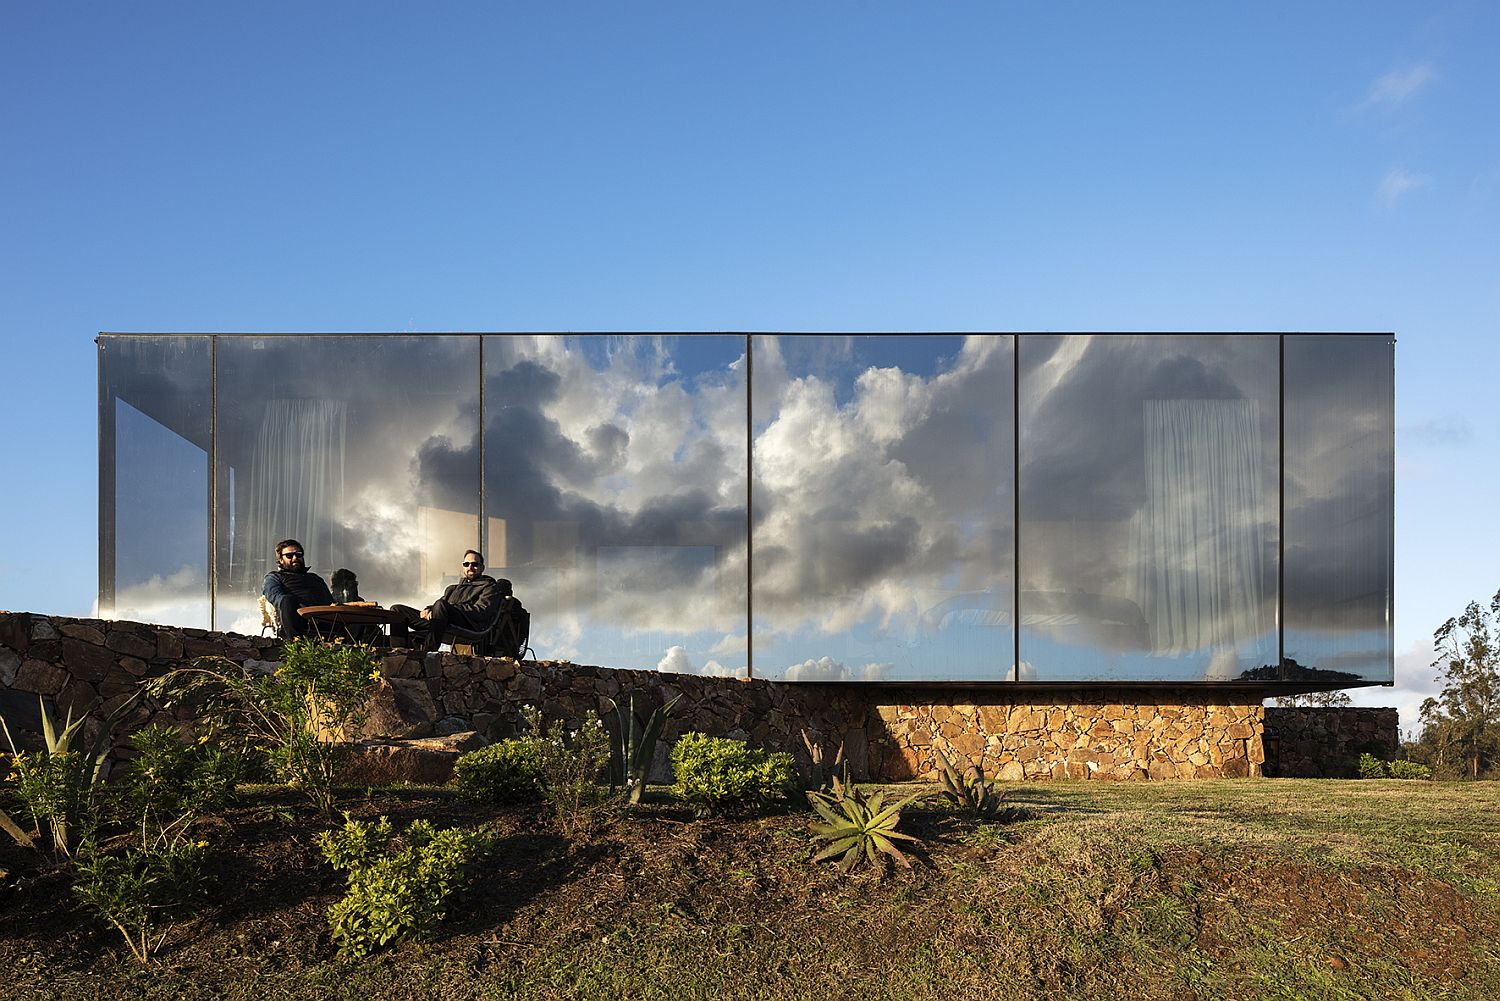 Cabin-facade-composed-of-one-way-mirror-gives-it-a-magical-look